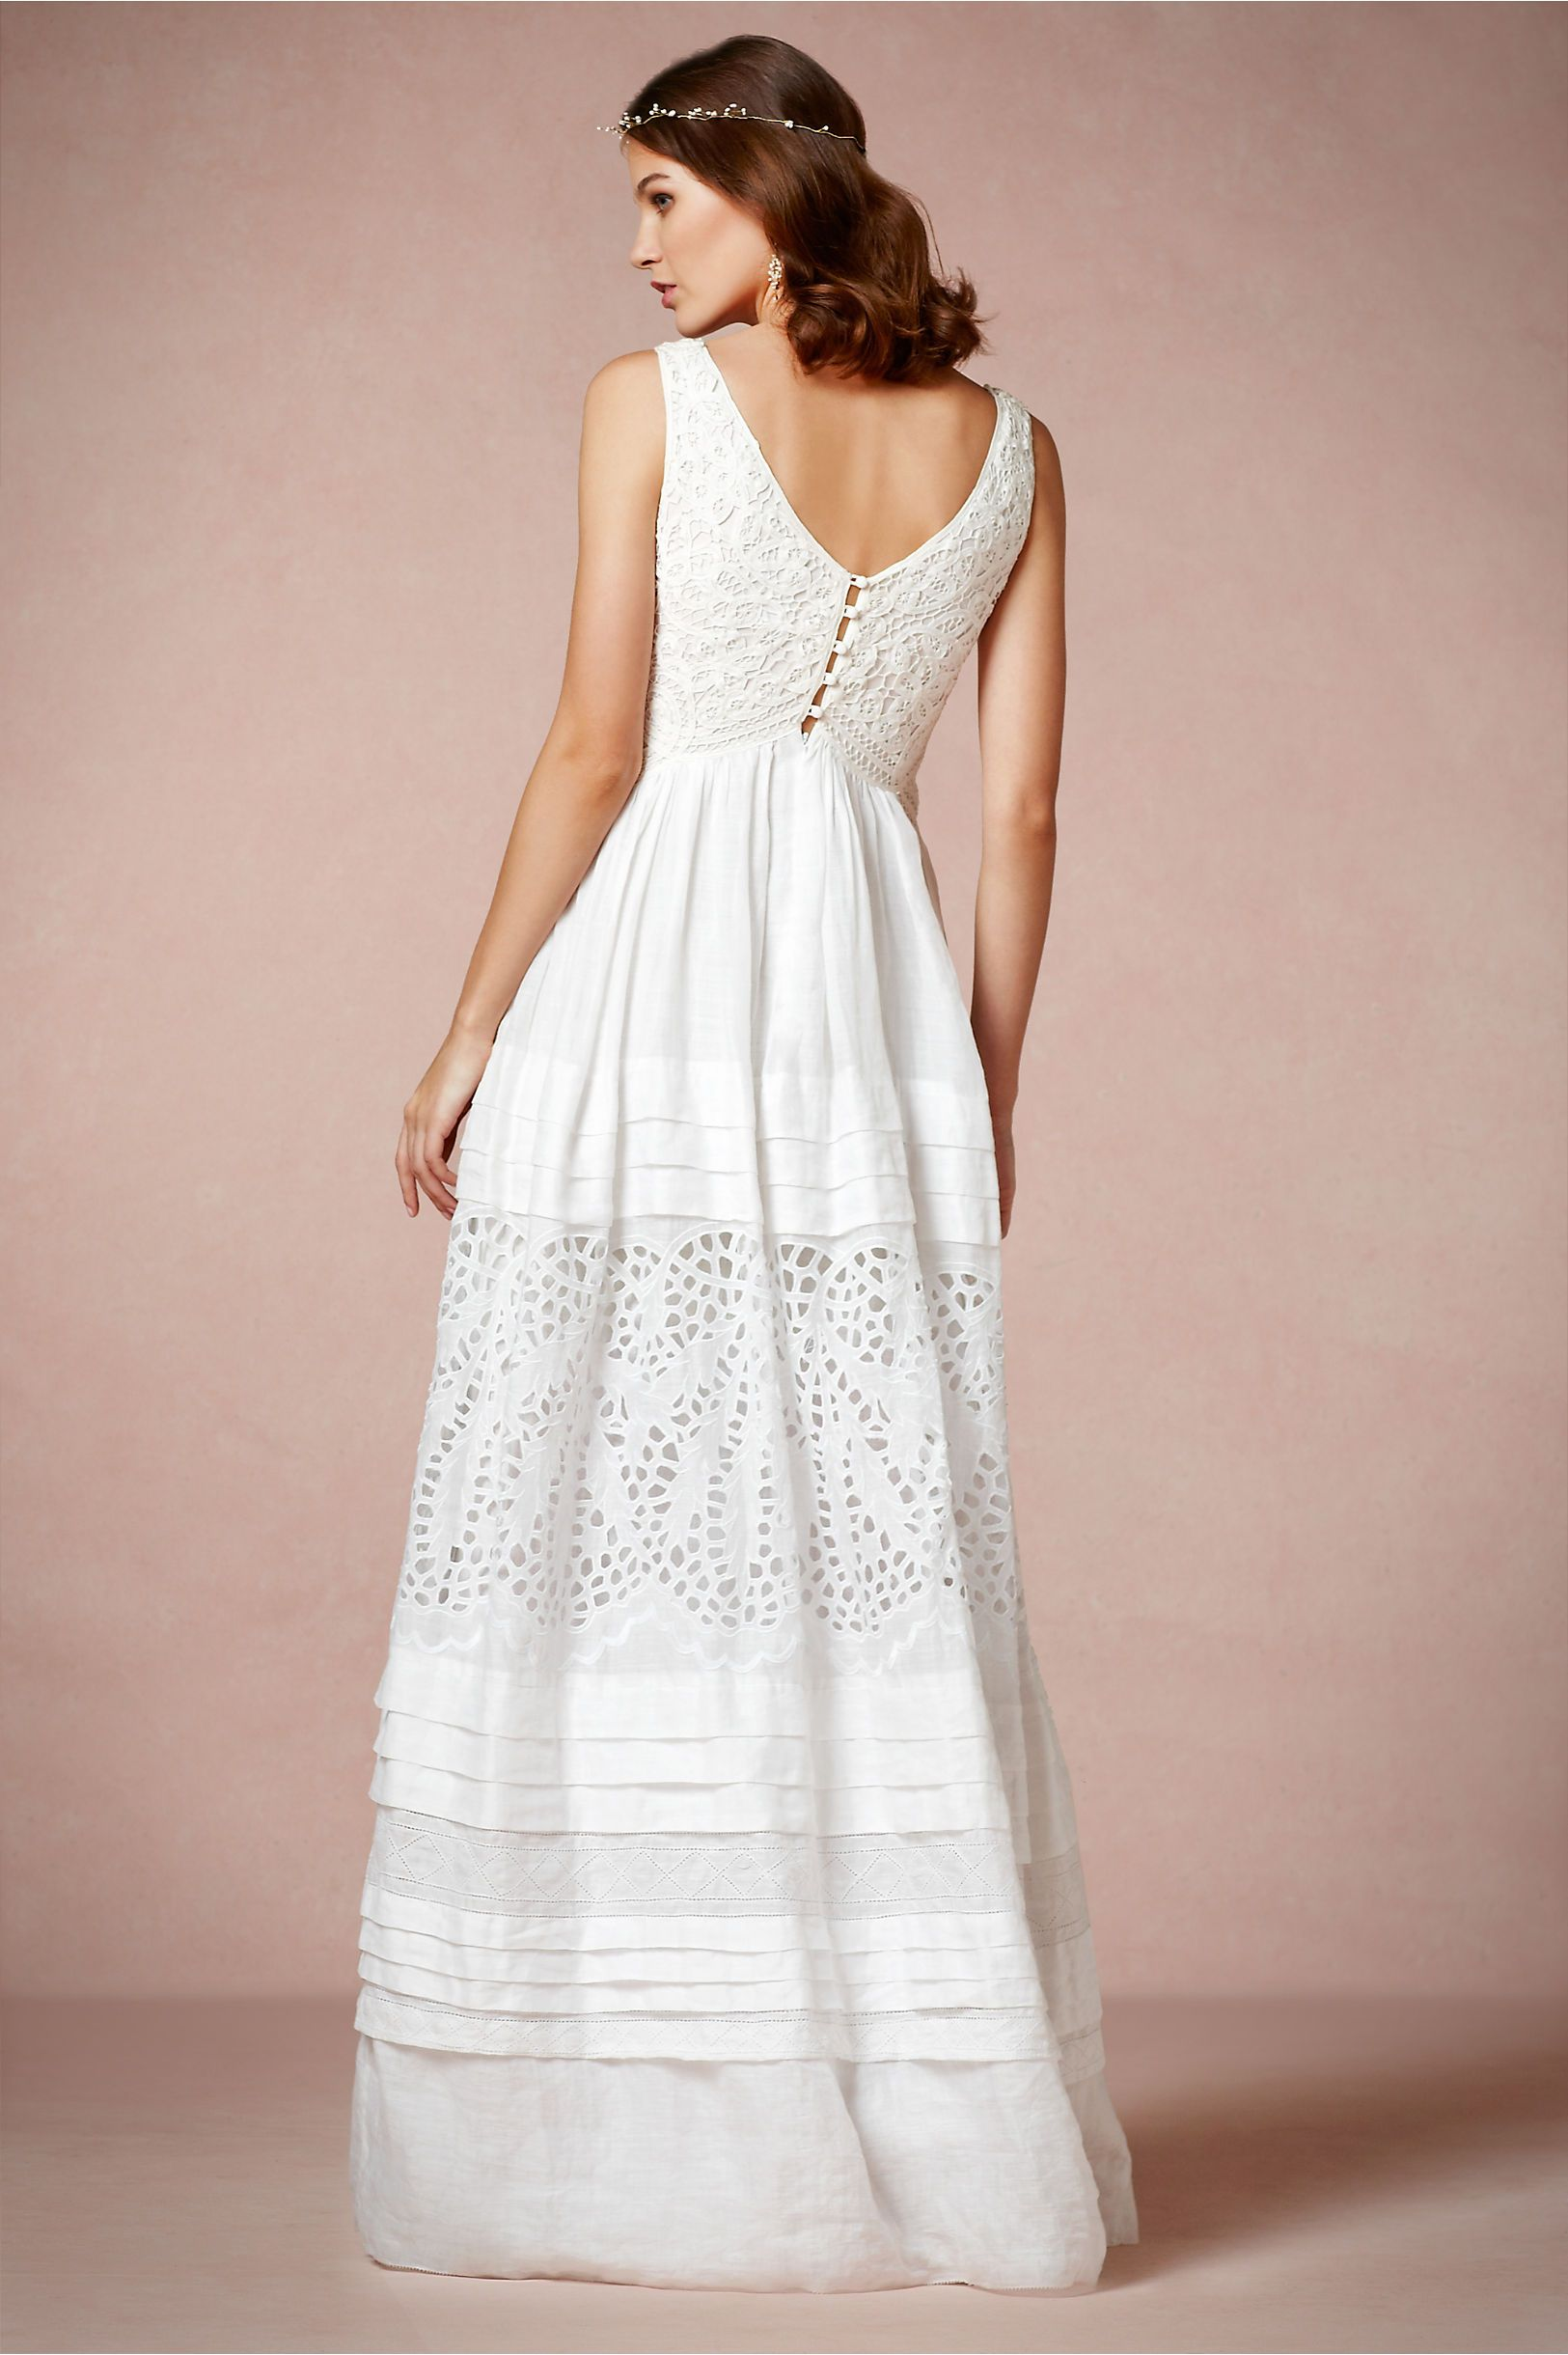 Lace and Ramie Collette Dinnigan Gown from BHLDN - Vegan Wedding ...